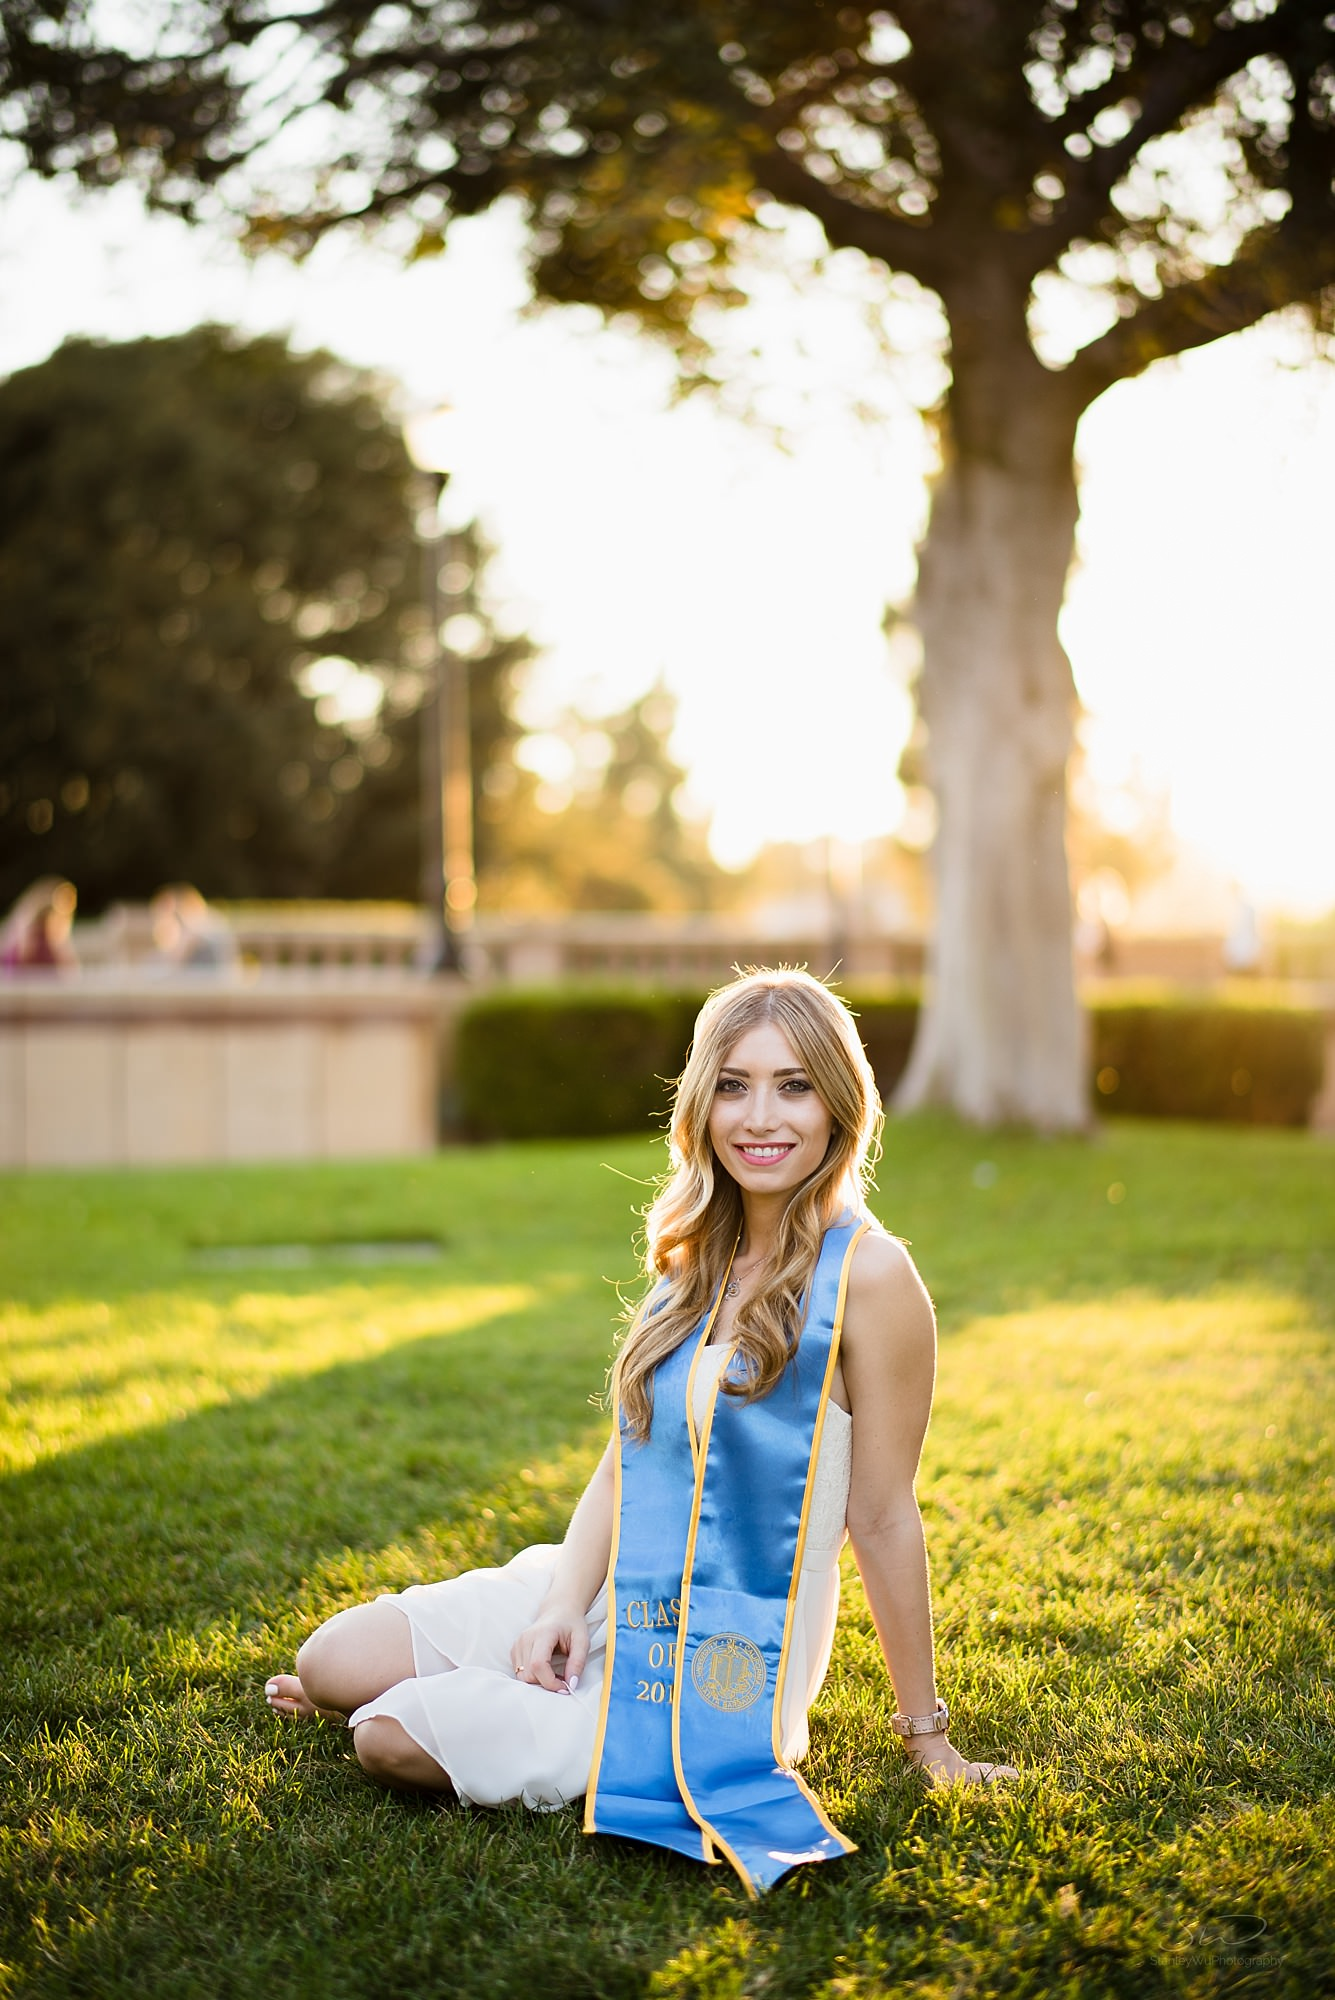 beautiful graduation senior portrait of a white girl in a white dress sitting on grass in front of a beautiful sunset at ucla in los angeles